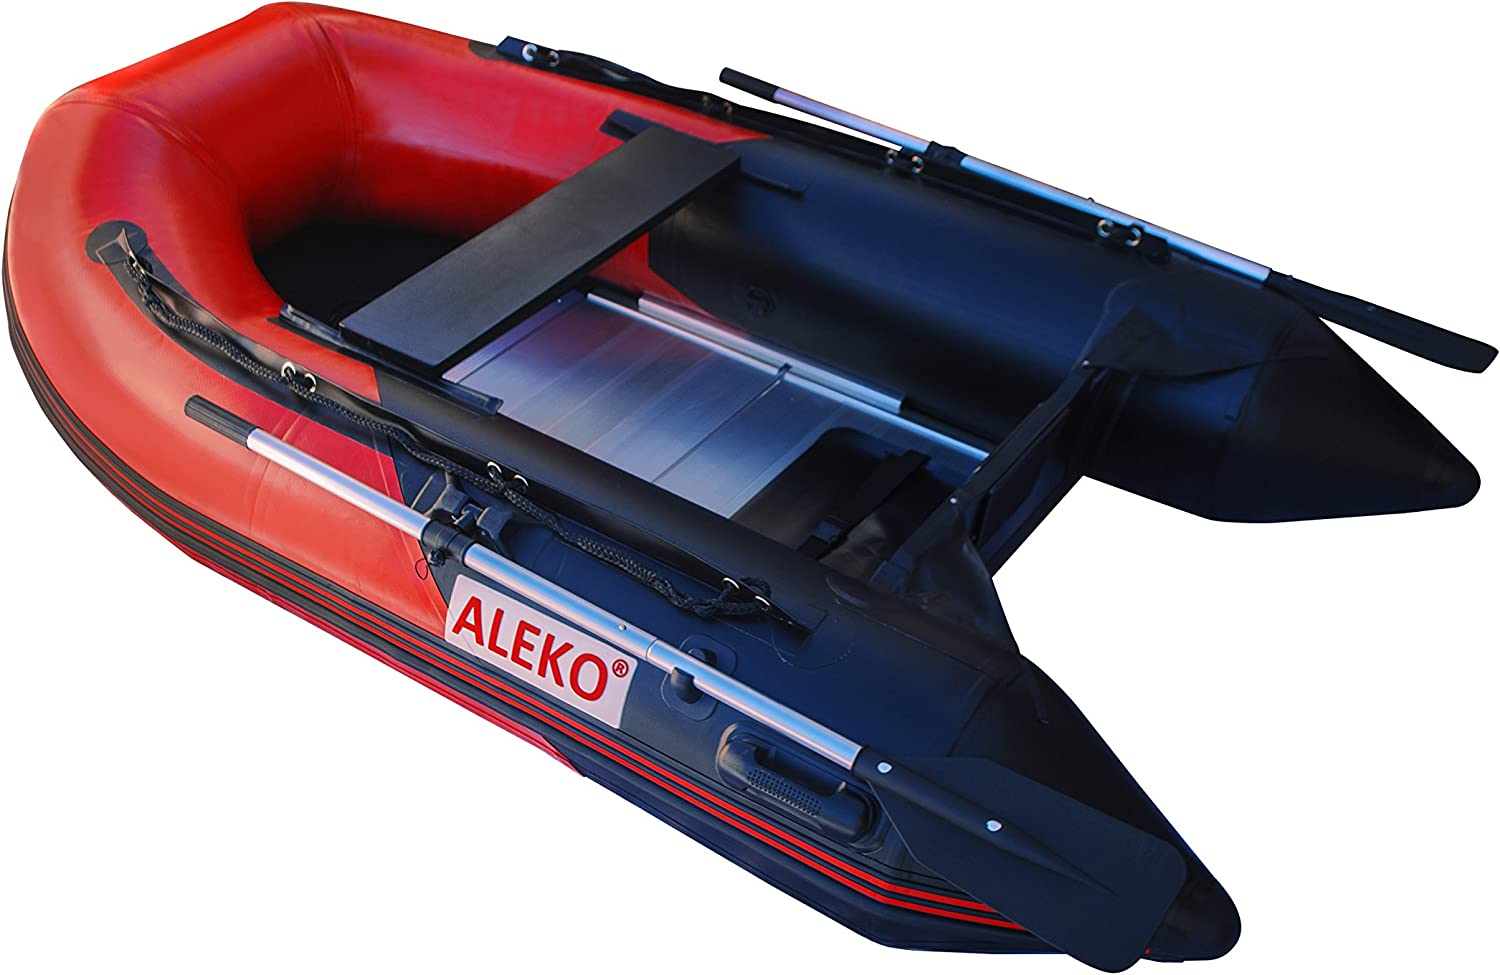 Amazon.com: Aleko hinchable, color rojo y negro barco 8.4 ...